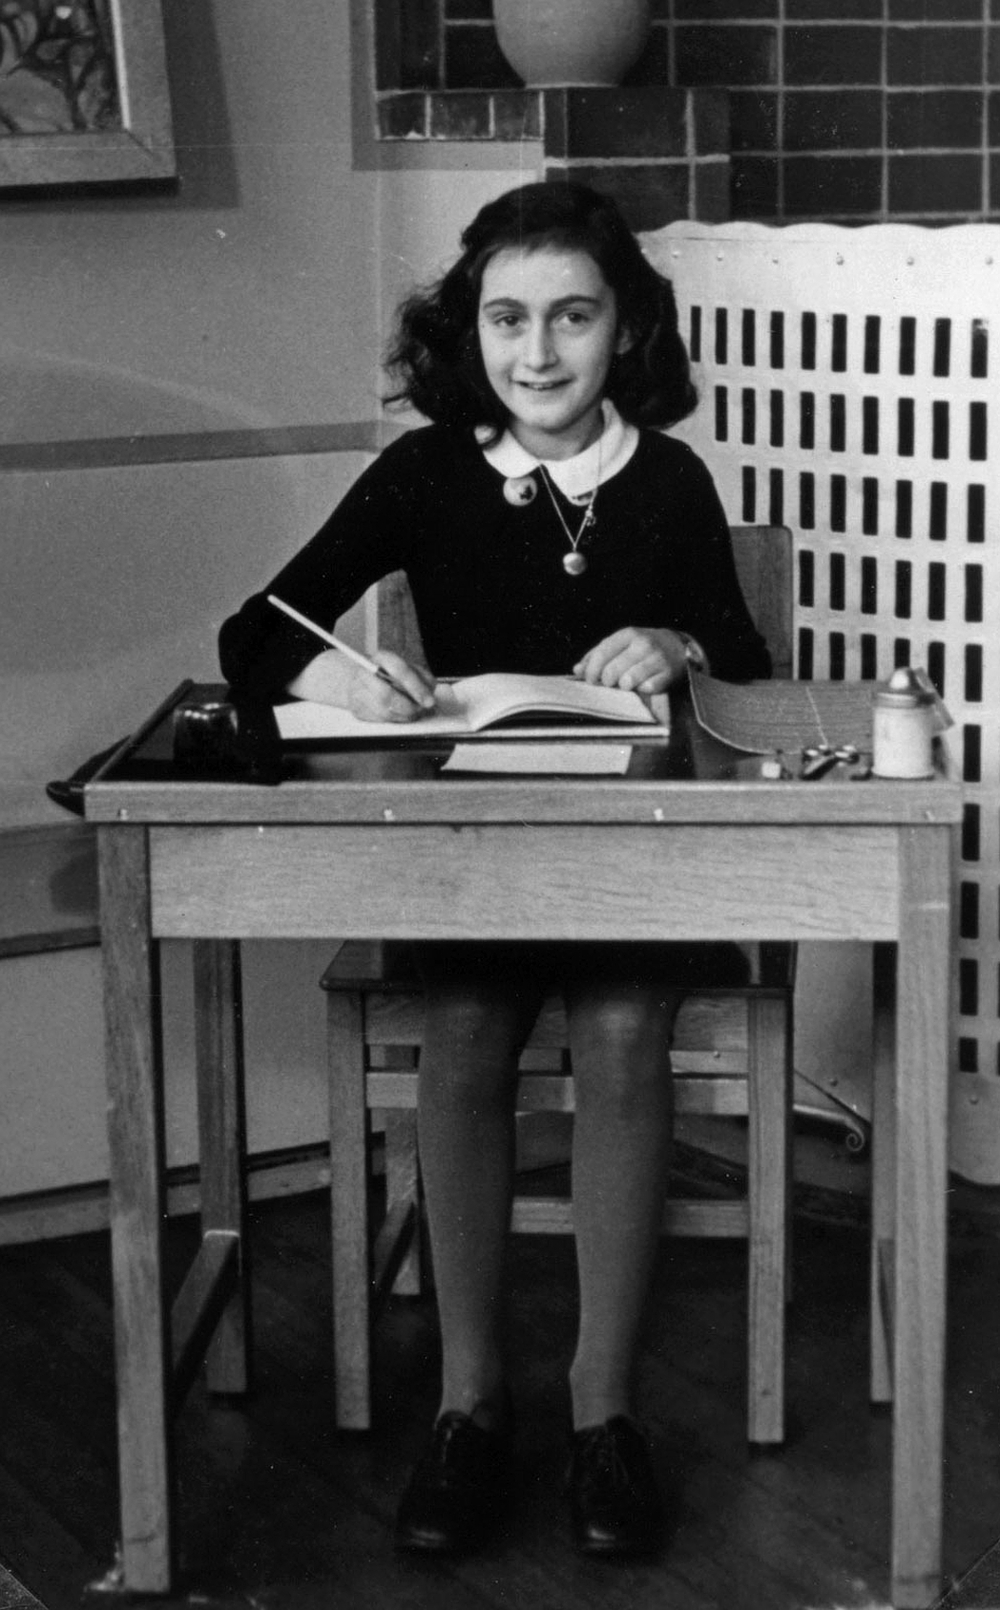 Anne Frank (Source: Wikipedia)